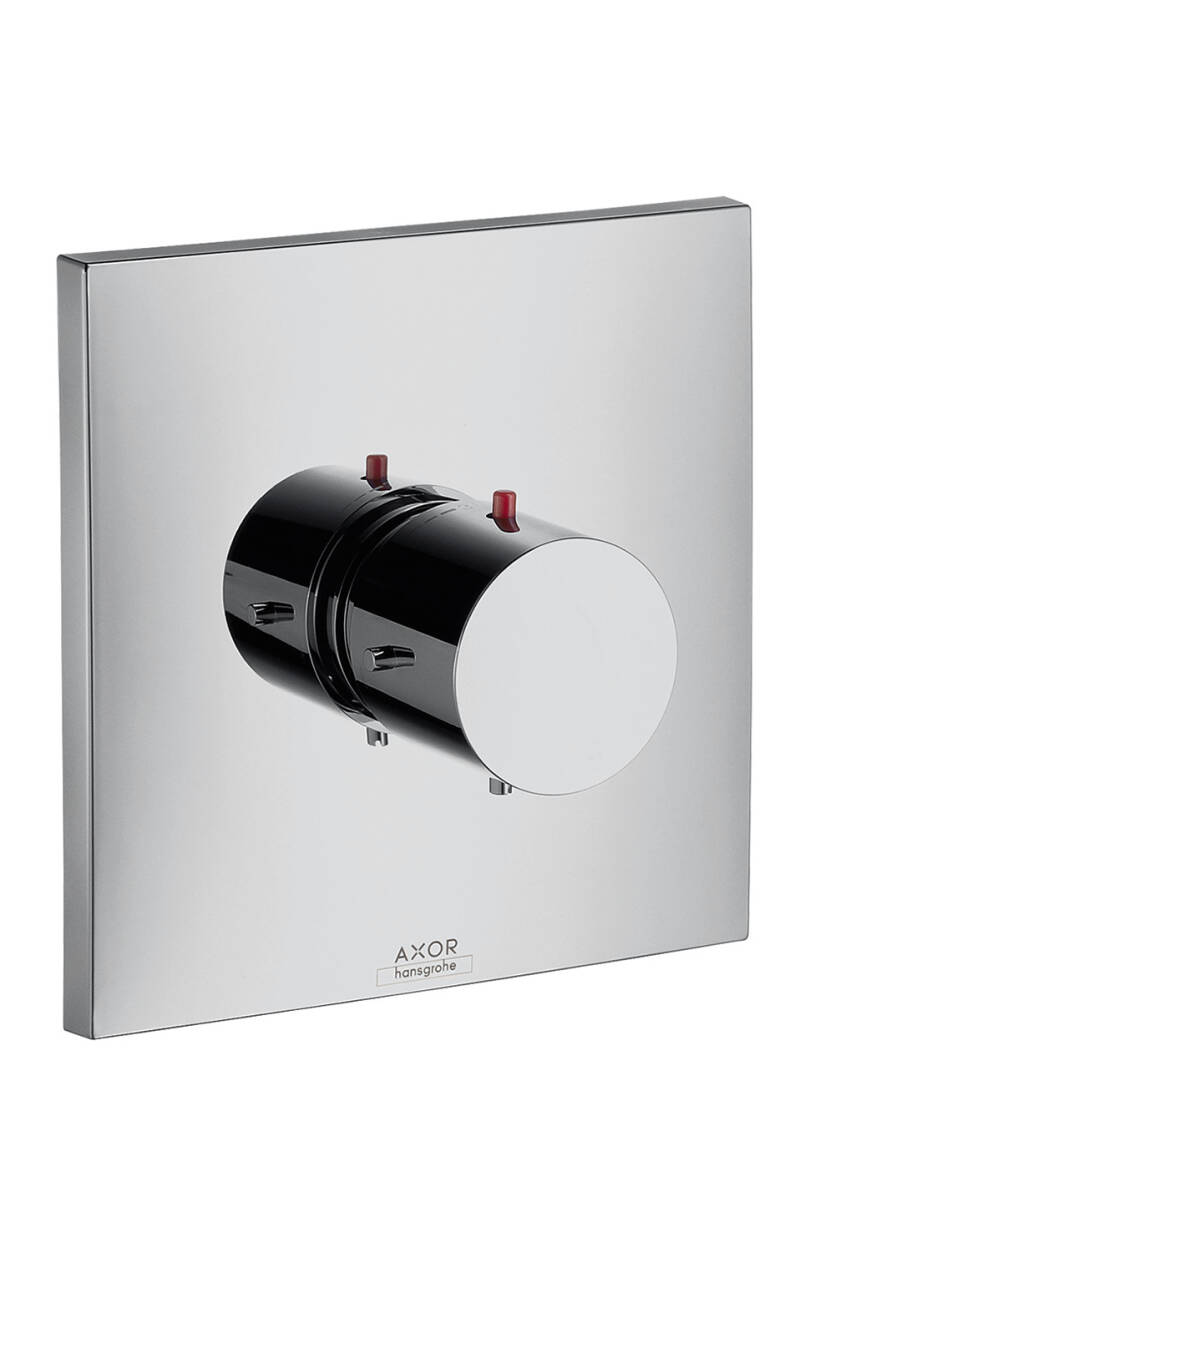 Thermostat for concealed installation, Polished Chrome, 10716020